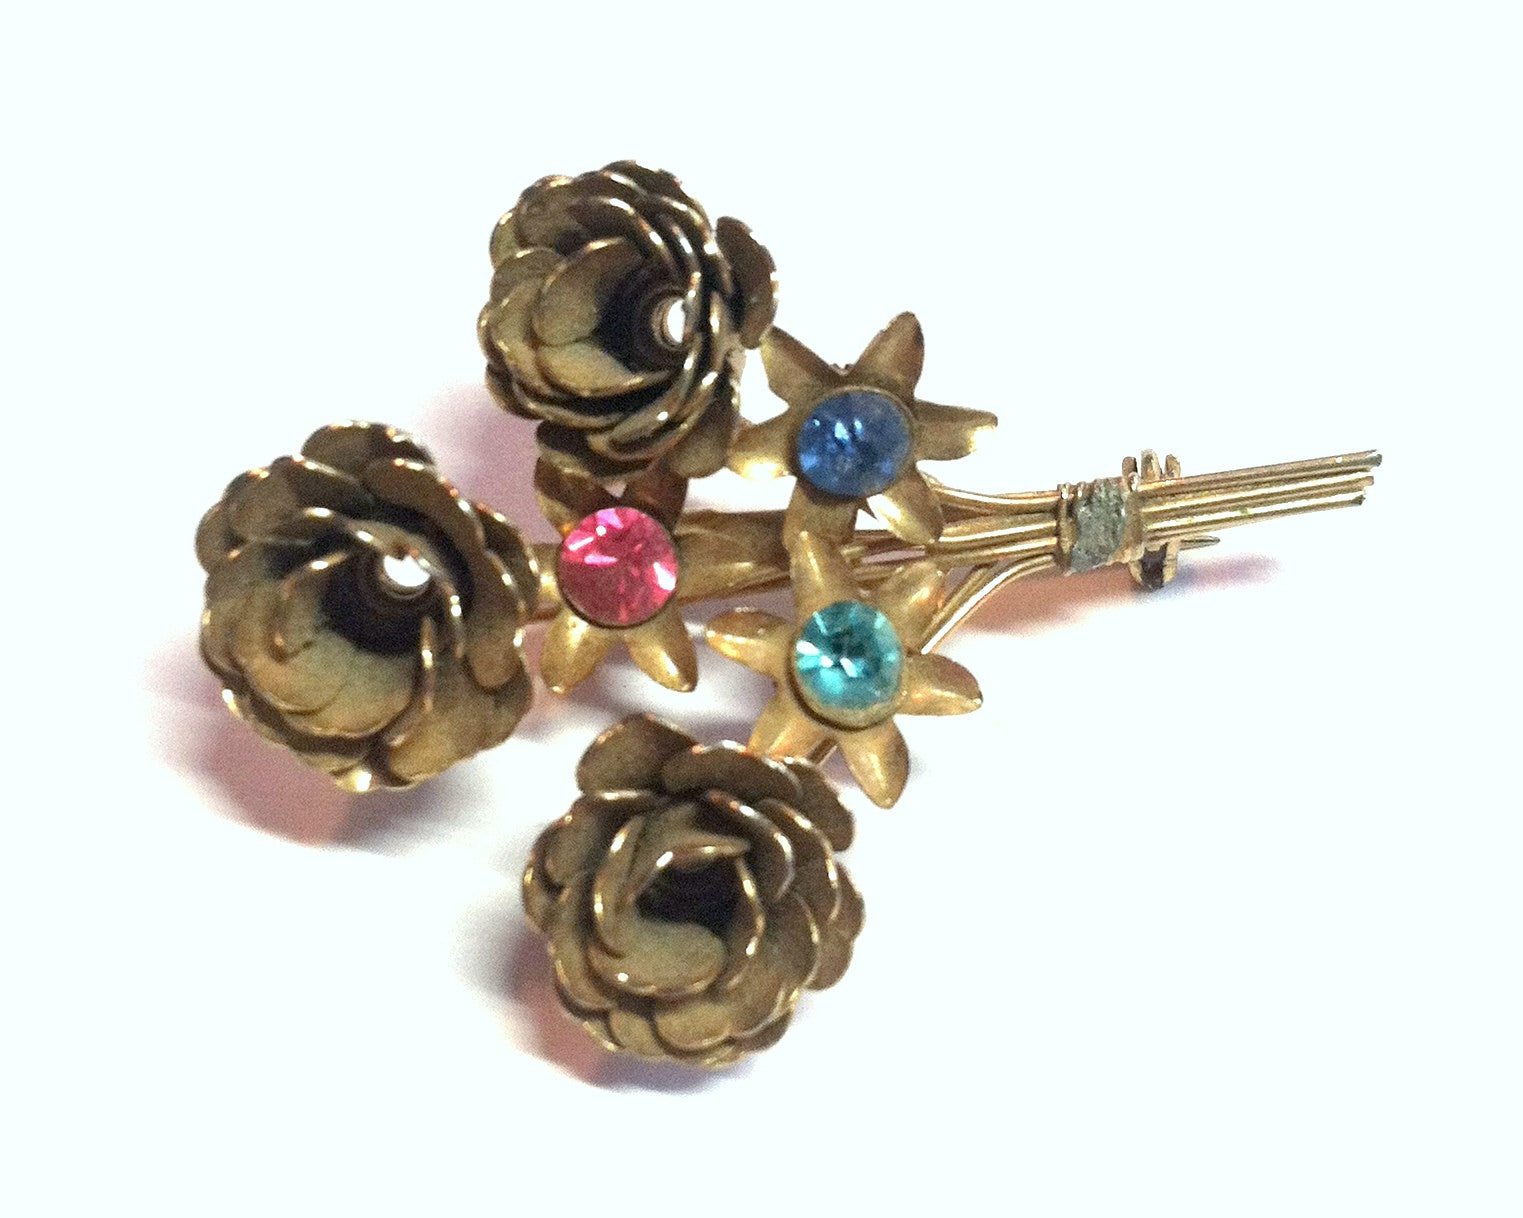 Pastel Rhinestone Dotted Flower Bouquet Brooch circa 1940s Dorothea's Closet Vintage Jewelry